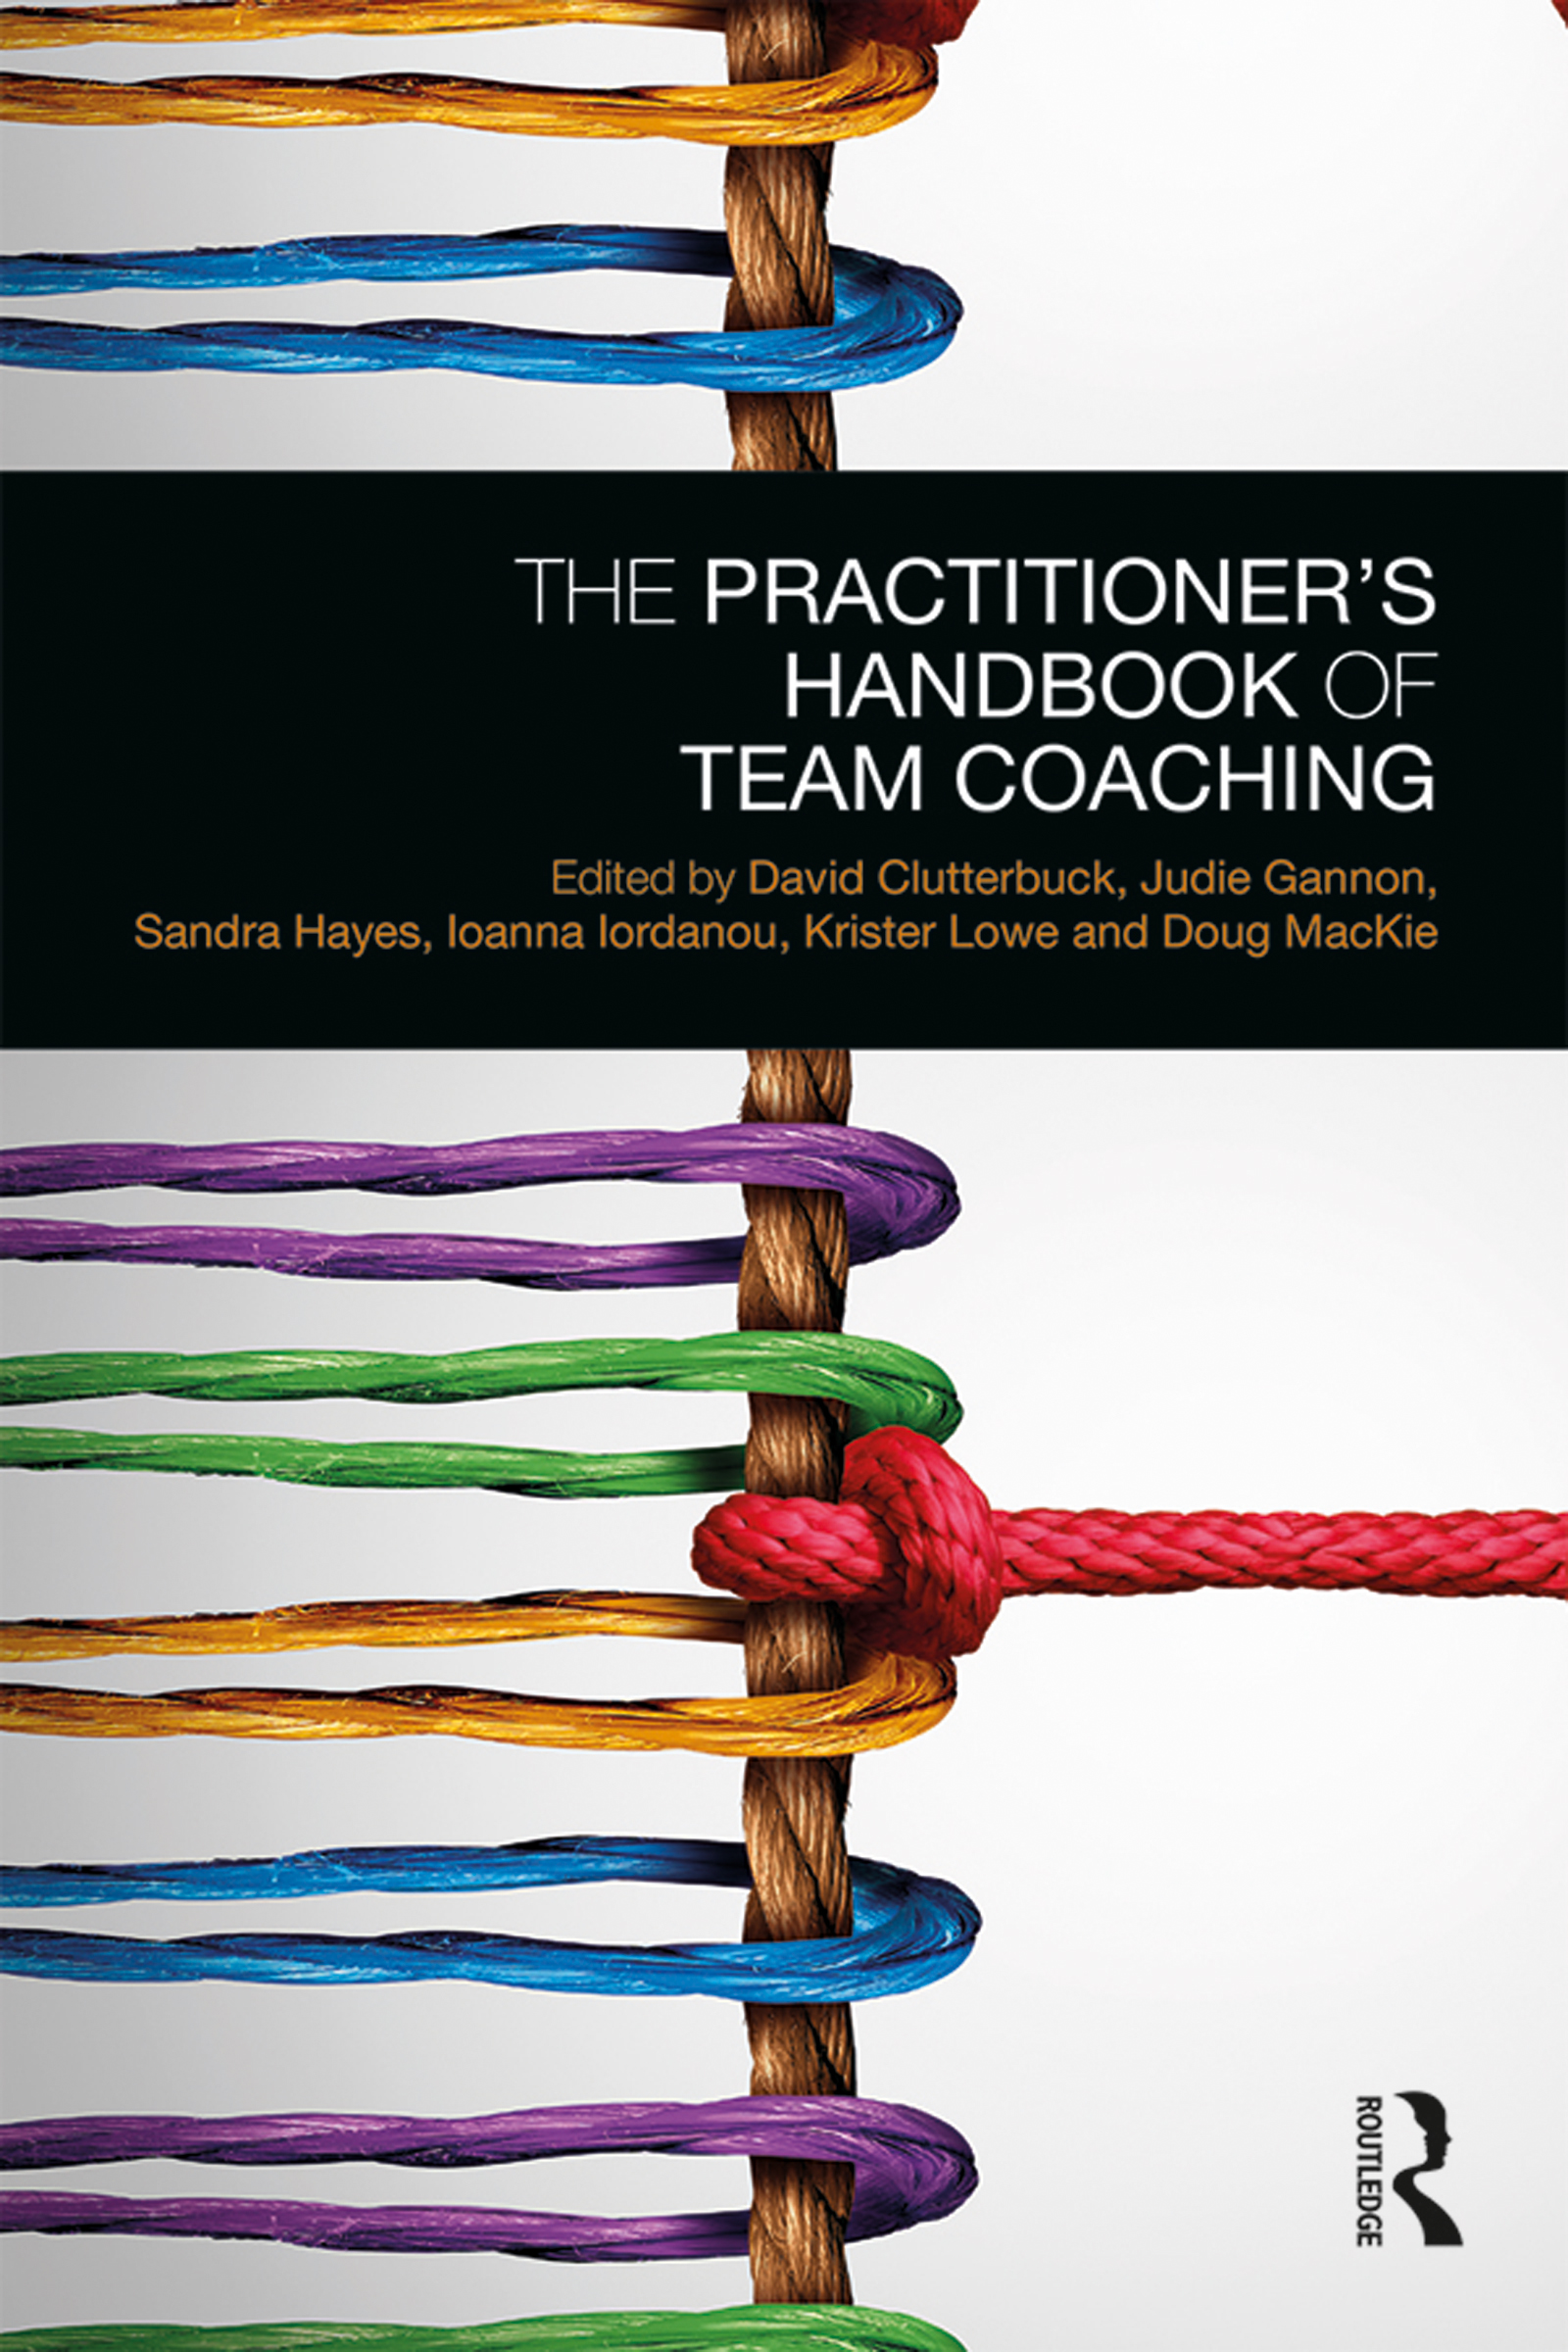 The Practitioner's Handbook of Team Coaching